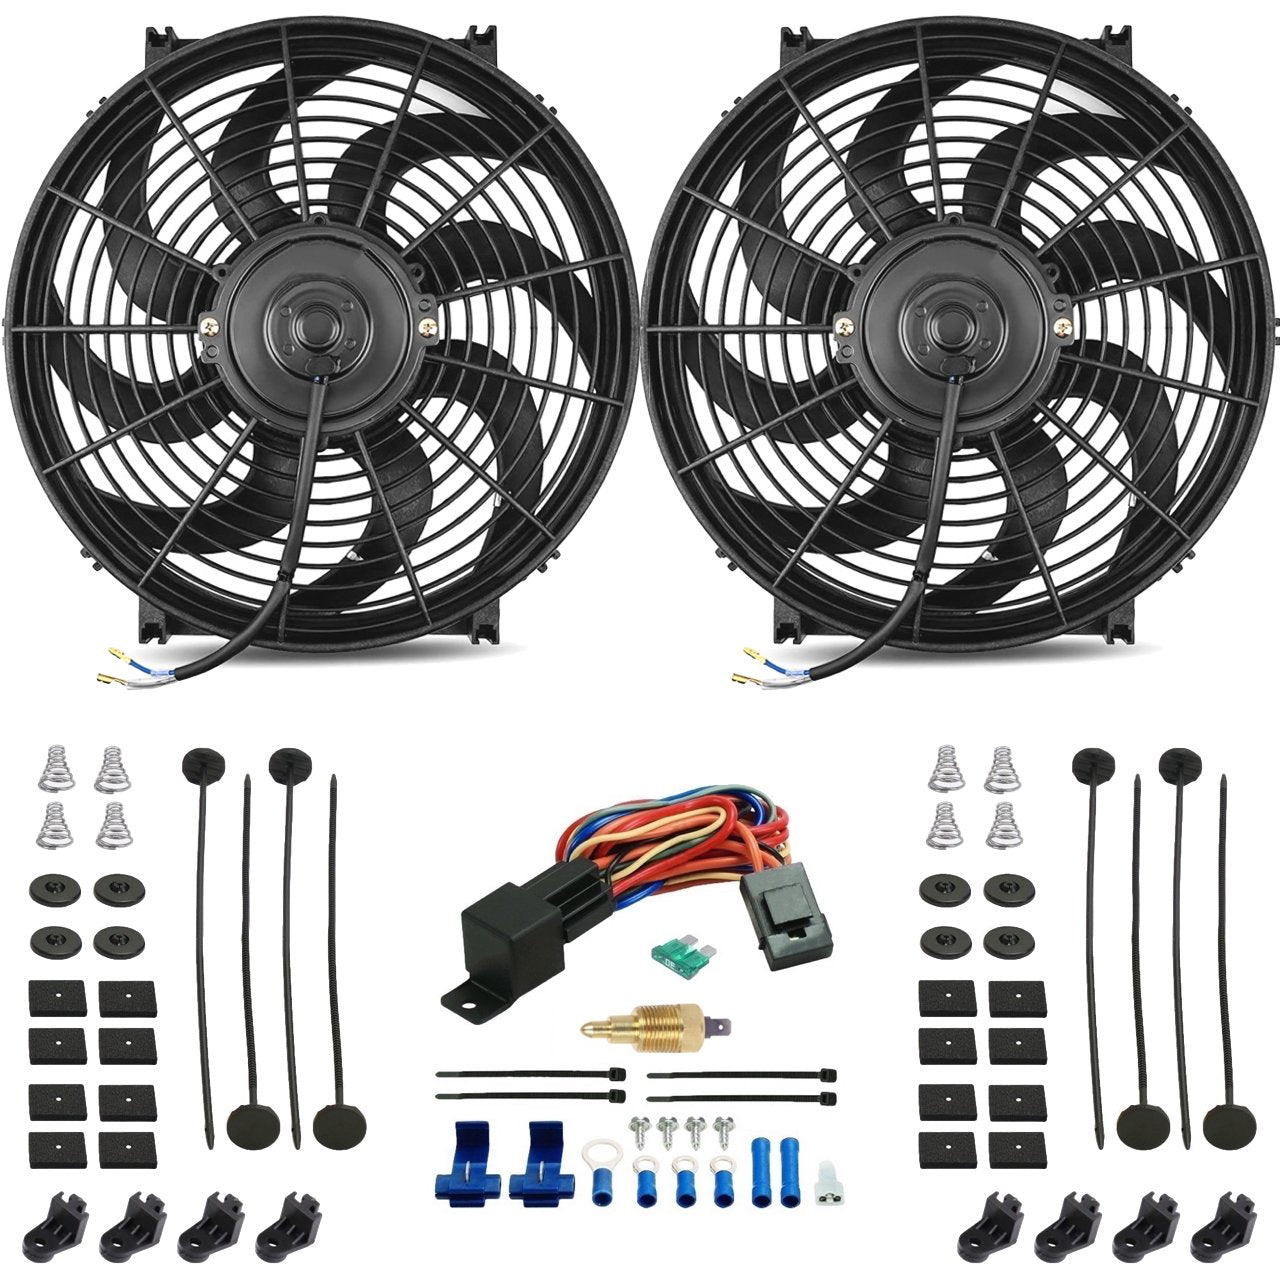 "Dual 14"" Inch 120w Motor High CFM Electric Cooling Fan Ground Thermostat Switch Wiring Kit-Dual Electric Fans-American Volt-1/8"" NPT-140'F On - 125'F Off-American Volt"